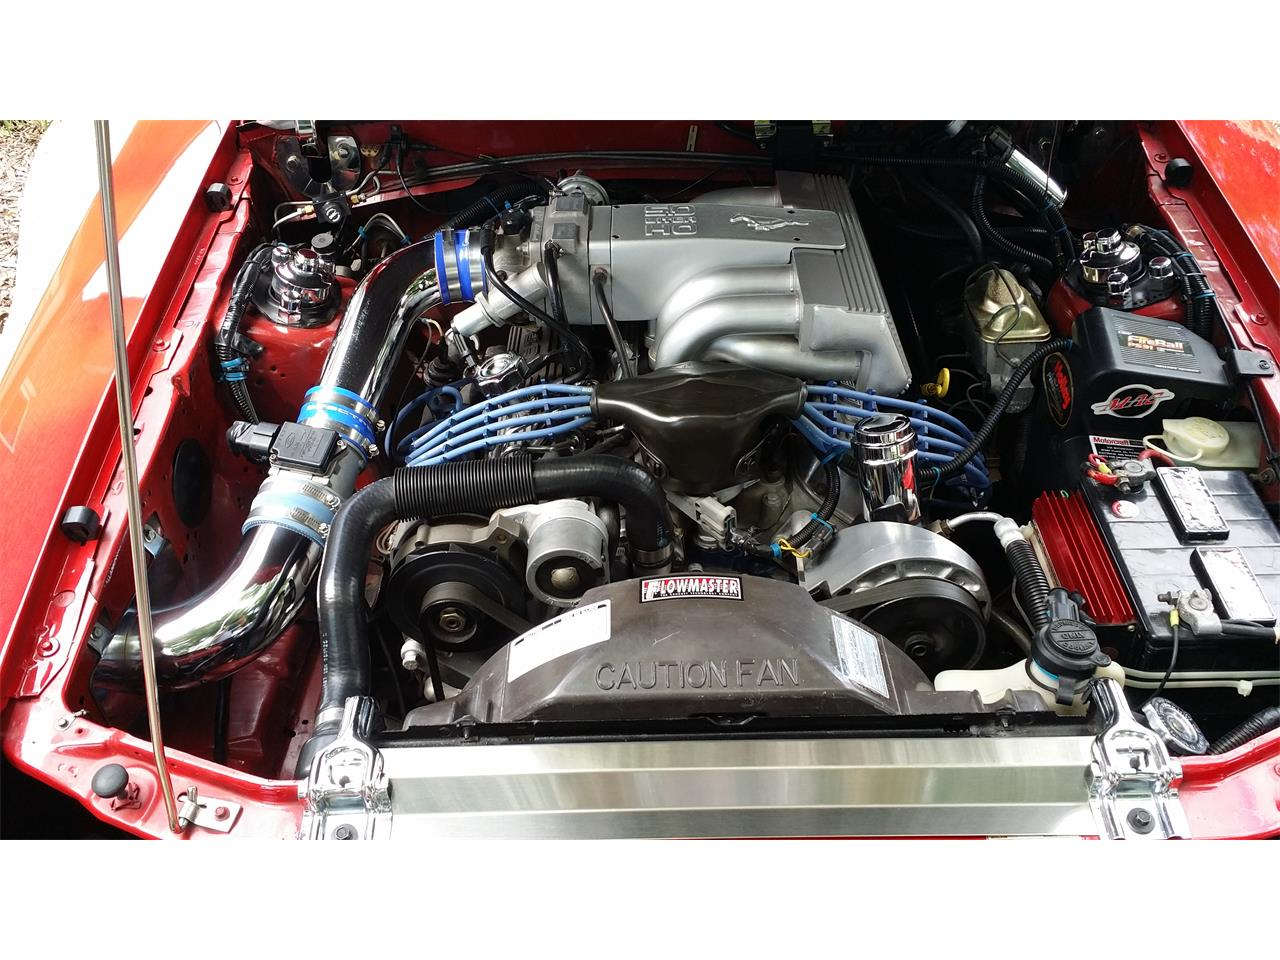 Large Picture of 1987 Ford Mustang Cobra located in Ontario - $15,000.00 - PSFC